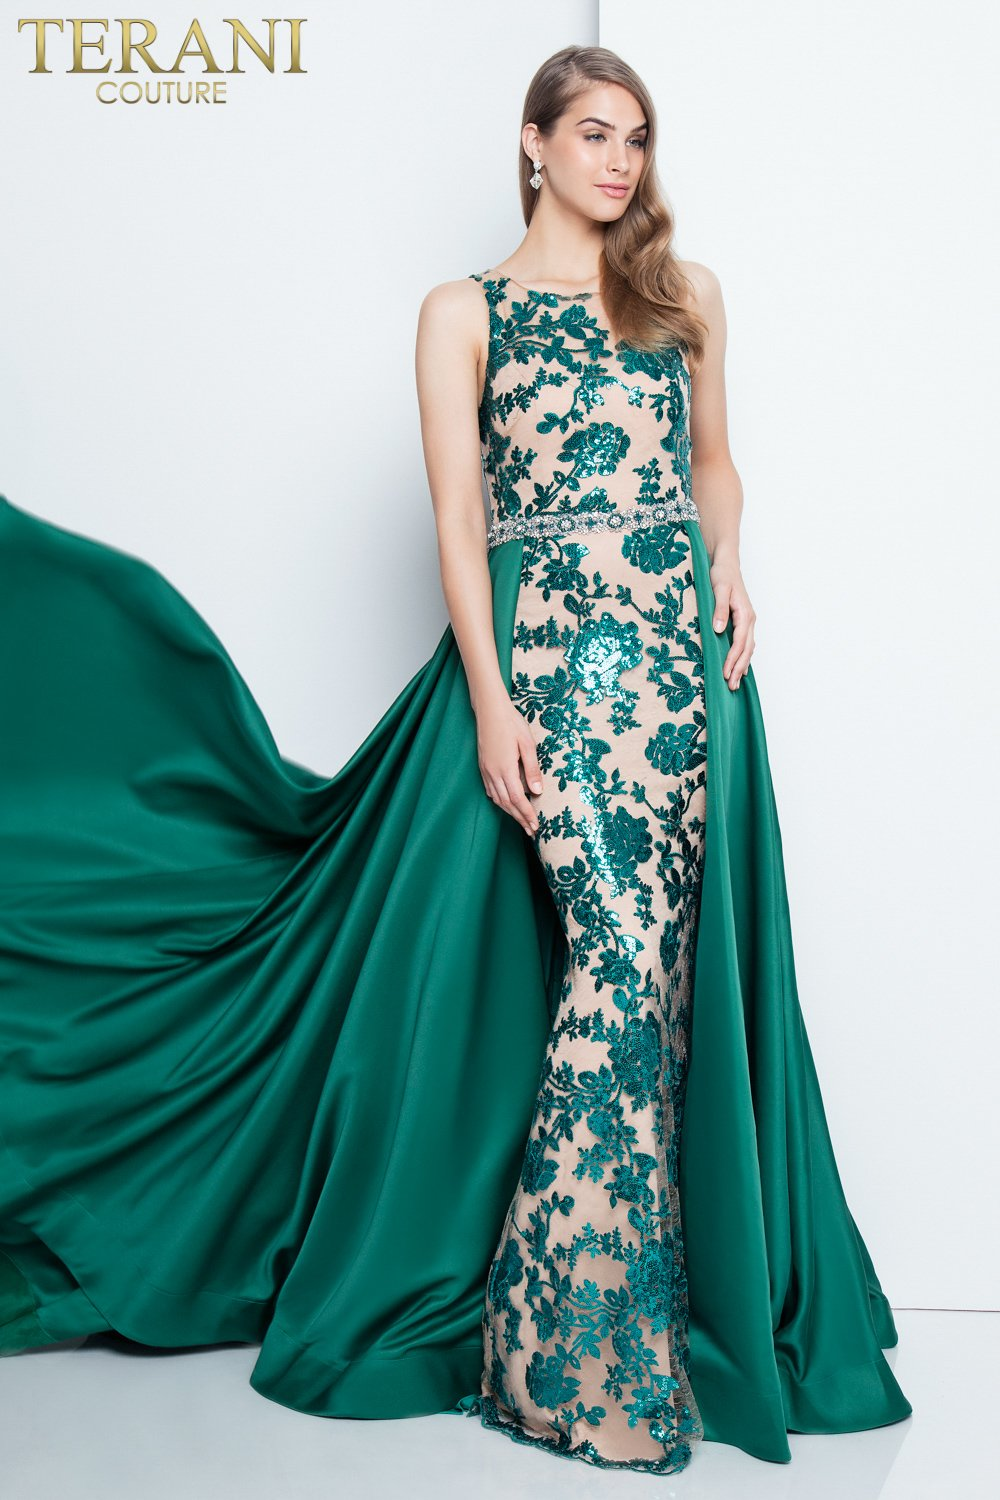 Embellished emerald prom dress 1812p5387 for Places to buy wedding dresses near me